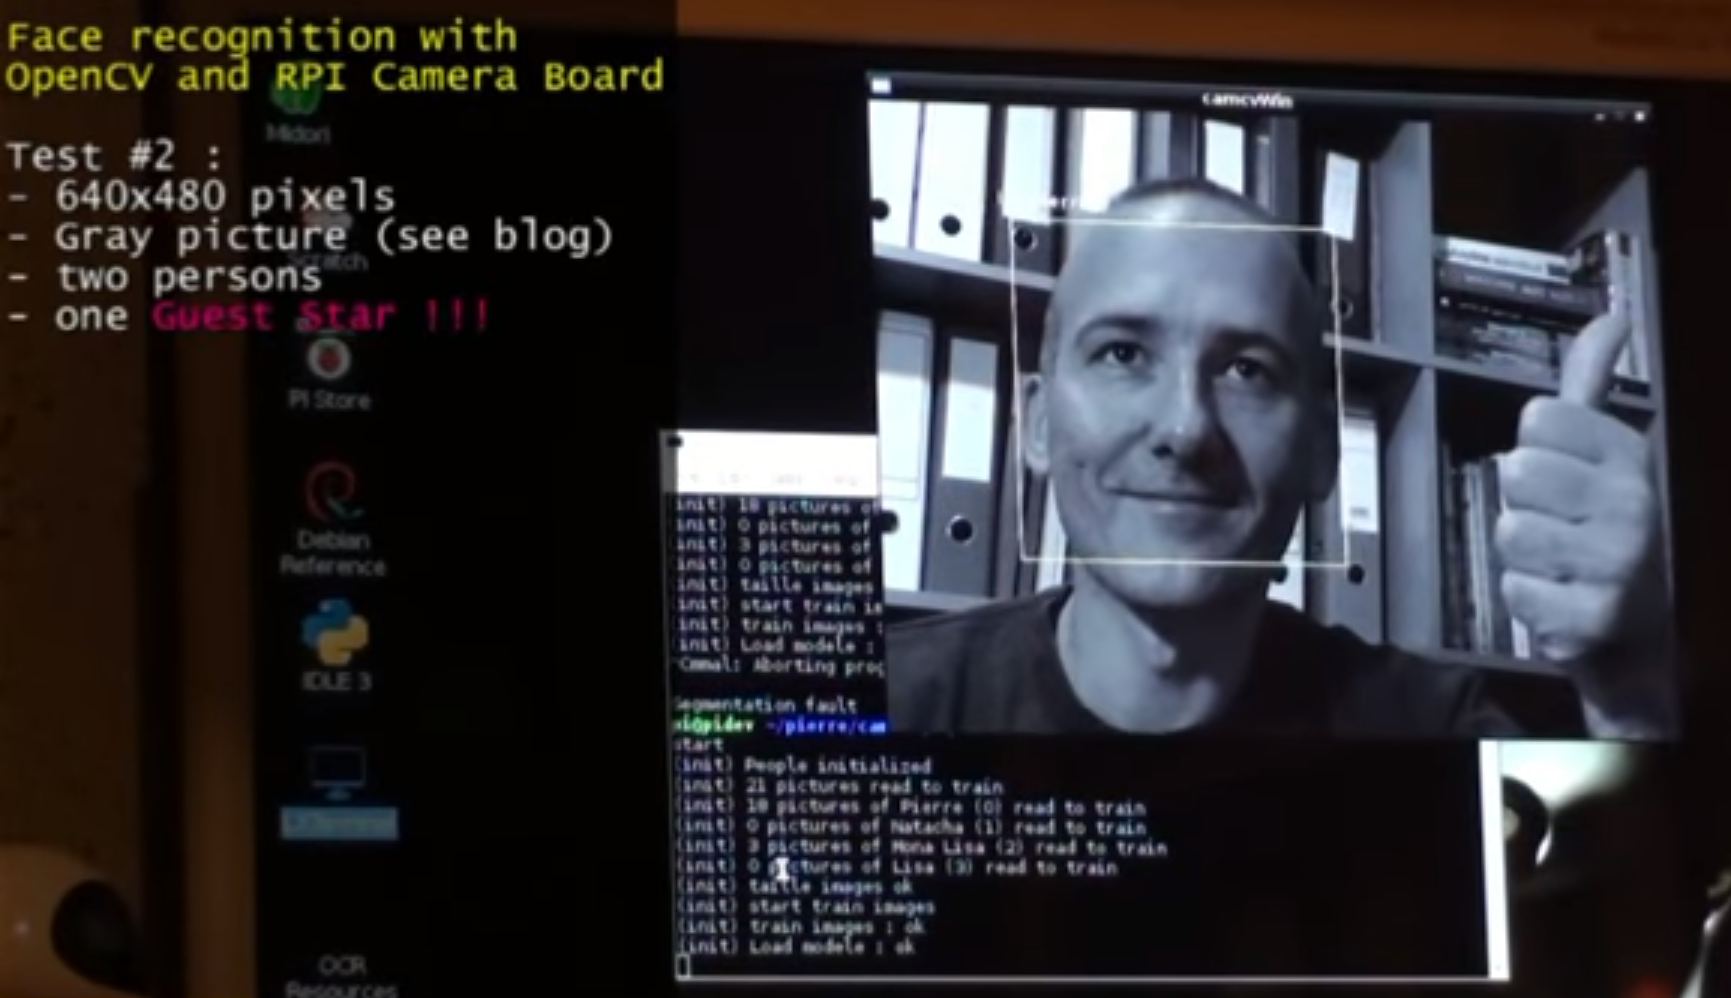 Facial recognition: OpenCV on the camera board - Raspberry Pi